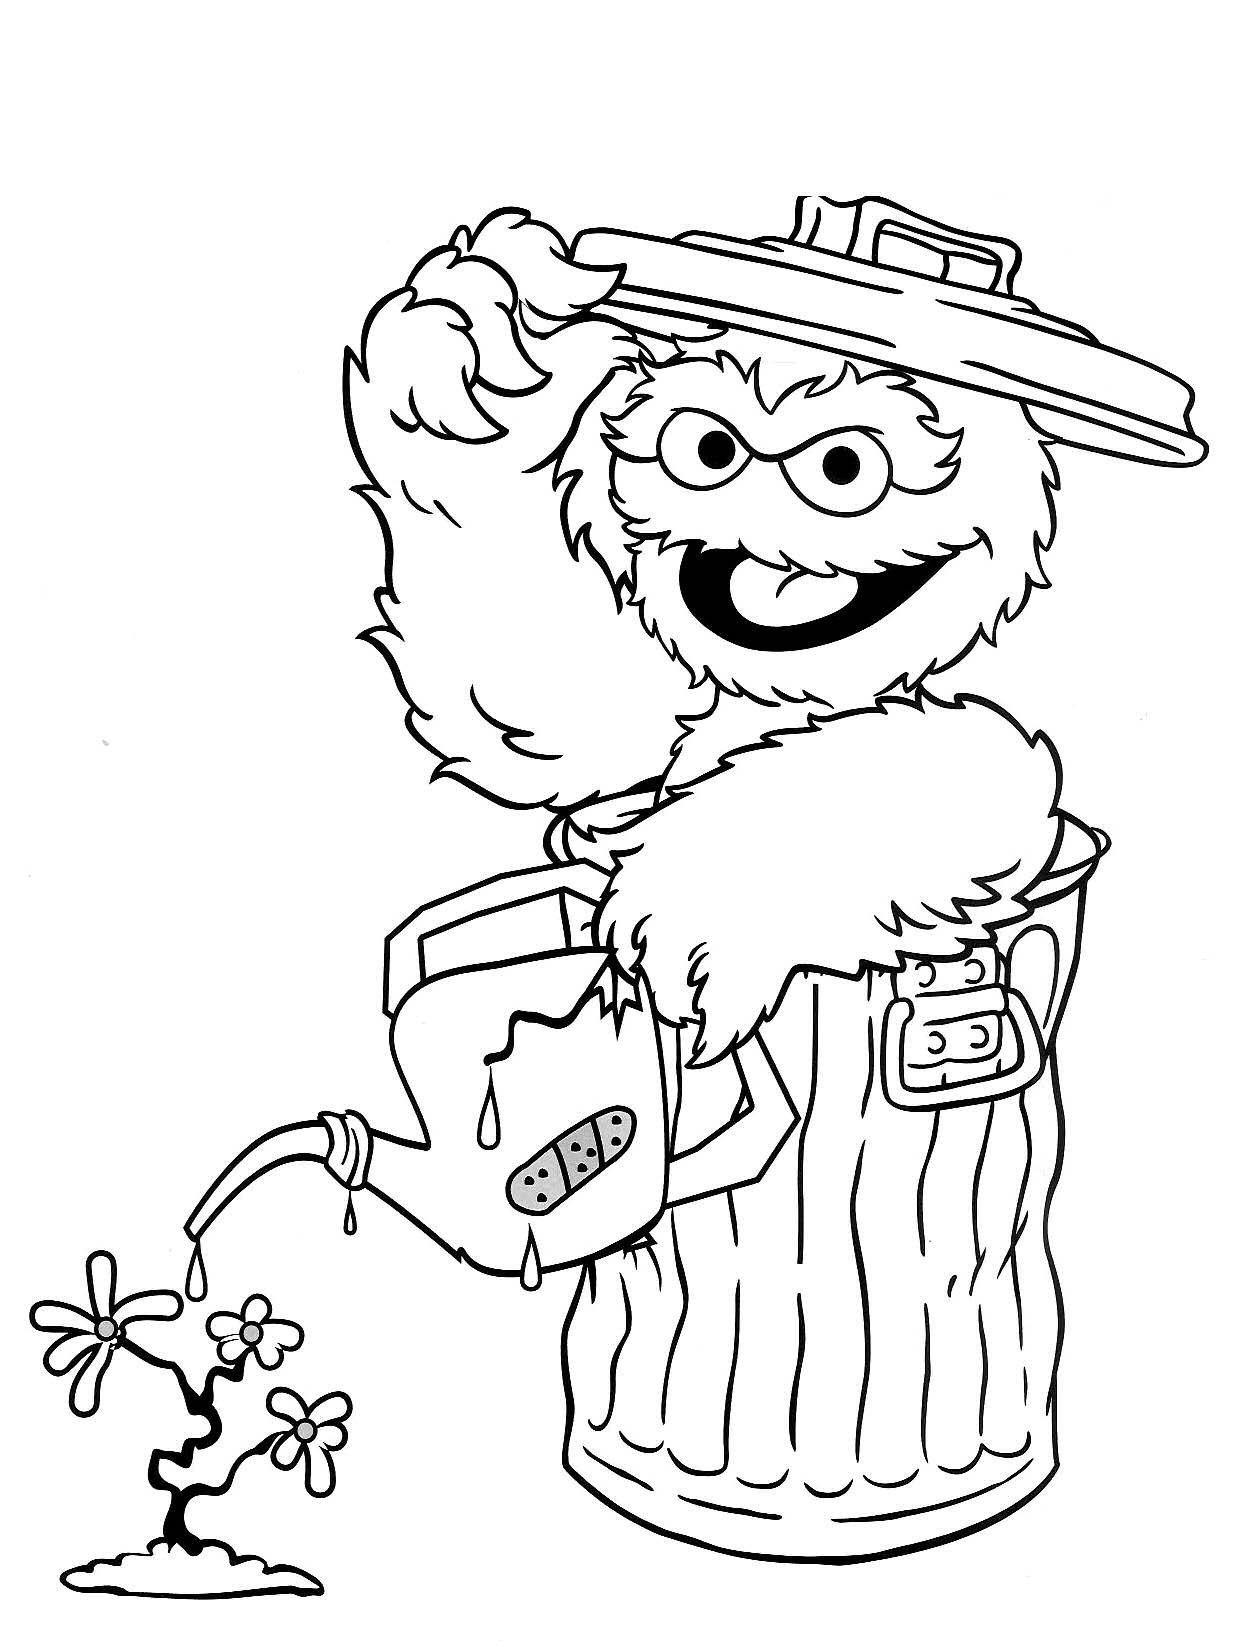 1240x1647 Awesome Sesame Street Elmo Coloring Pages Color Pages And More